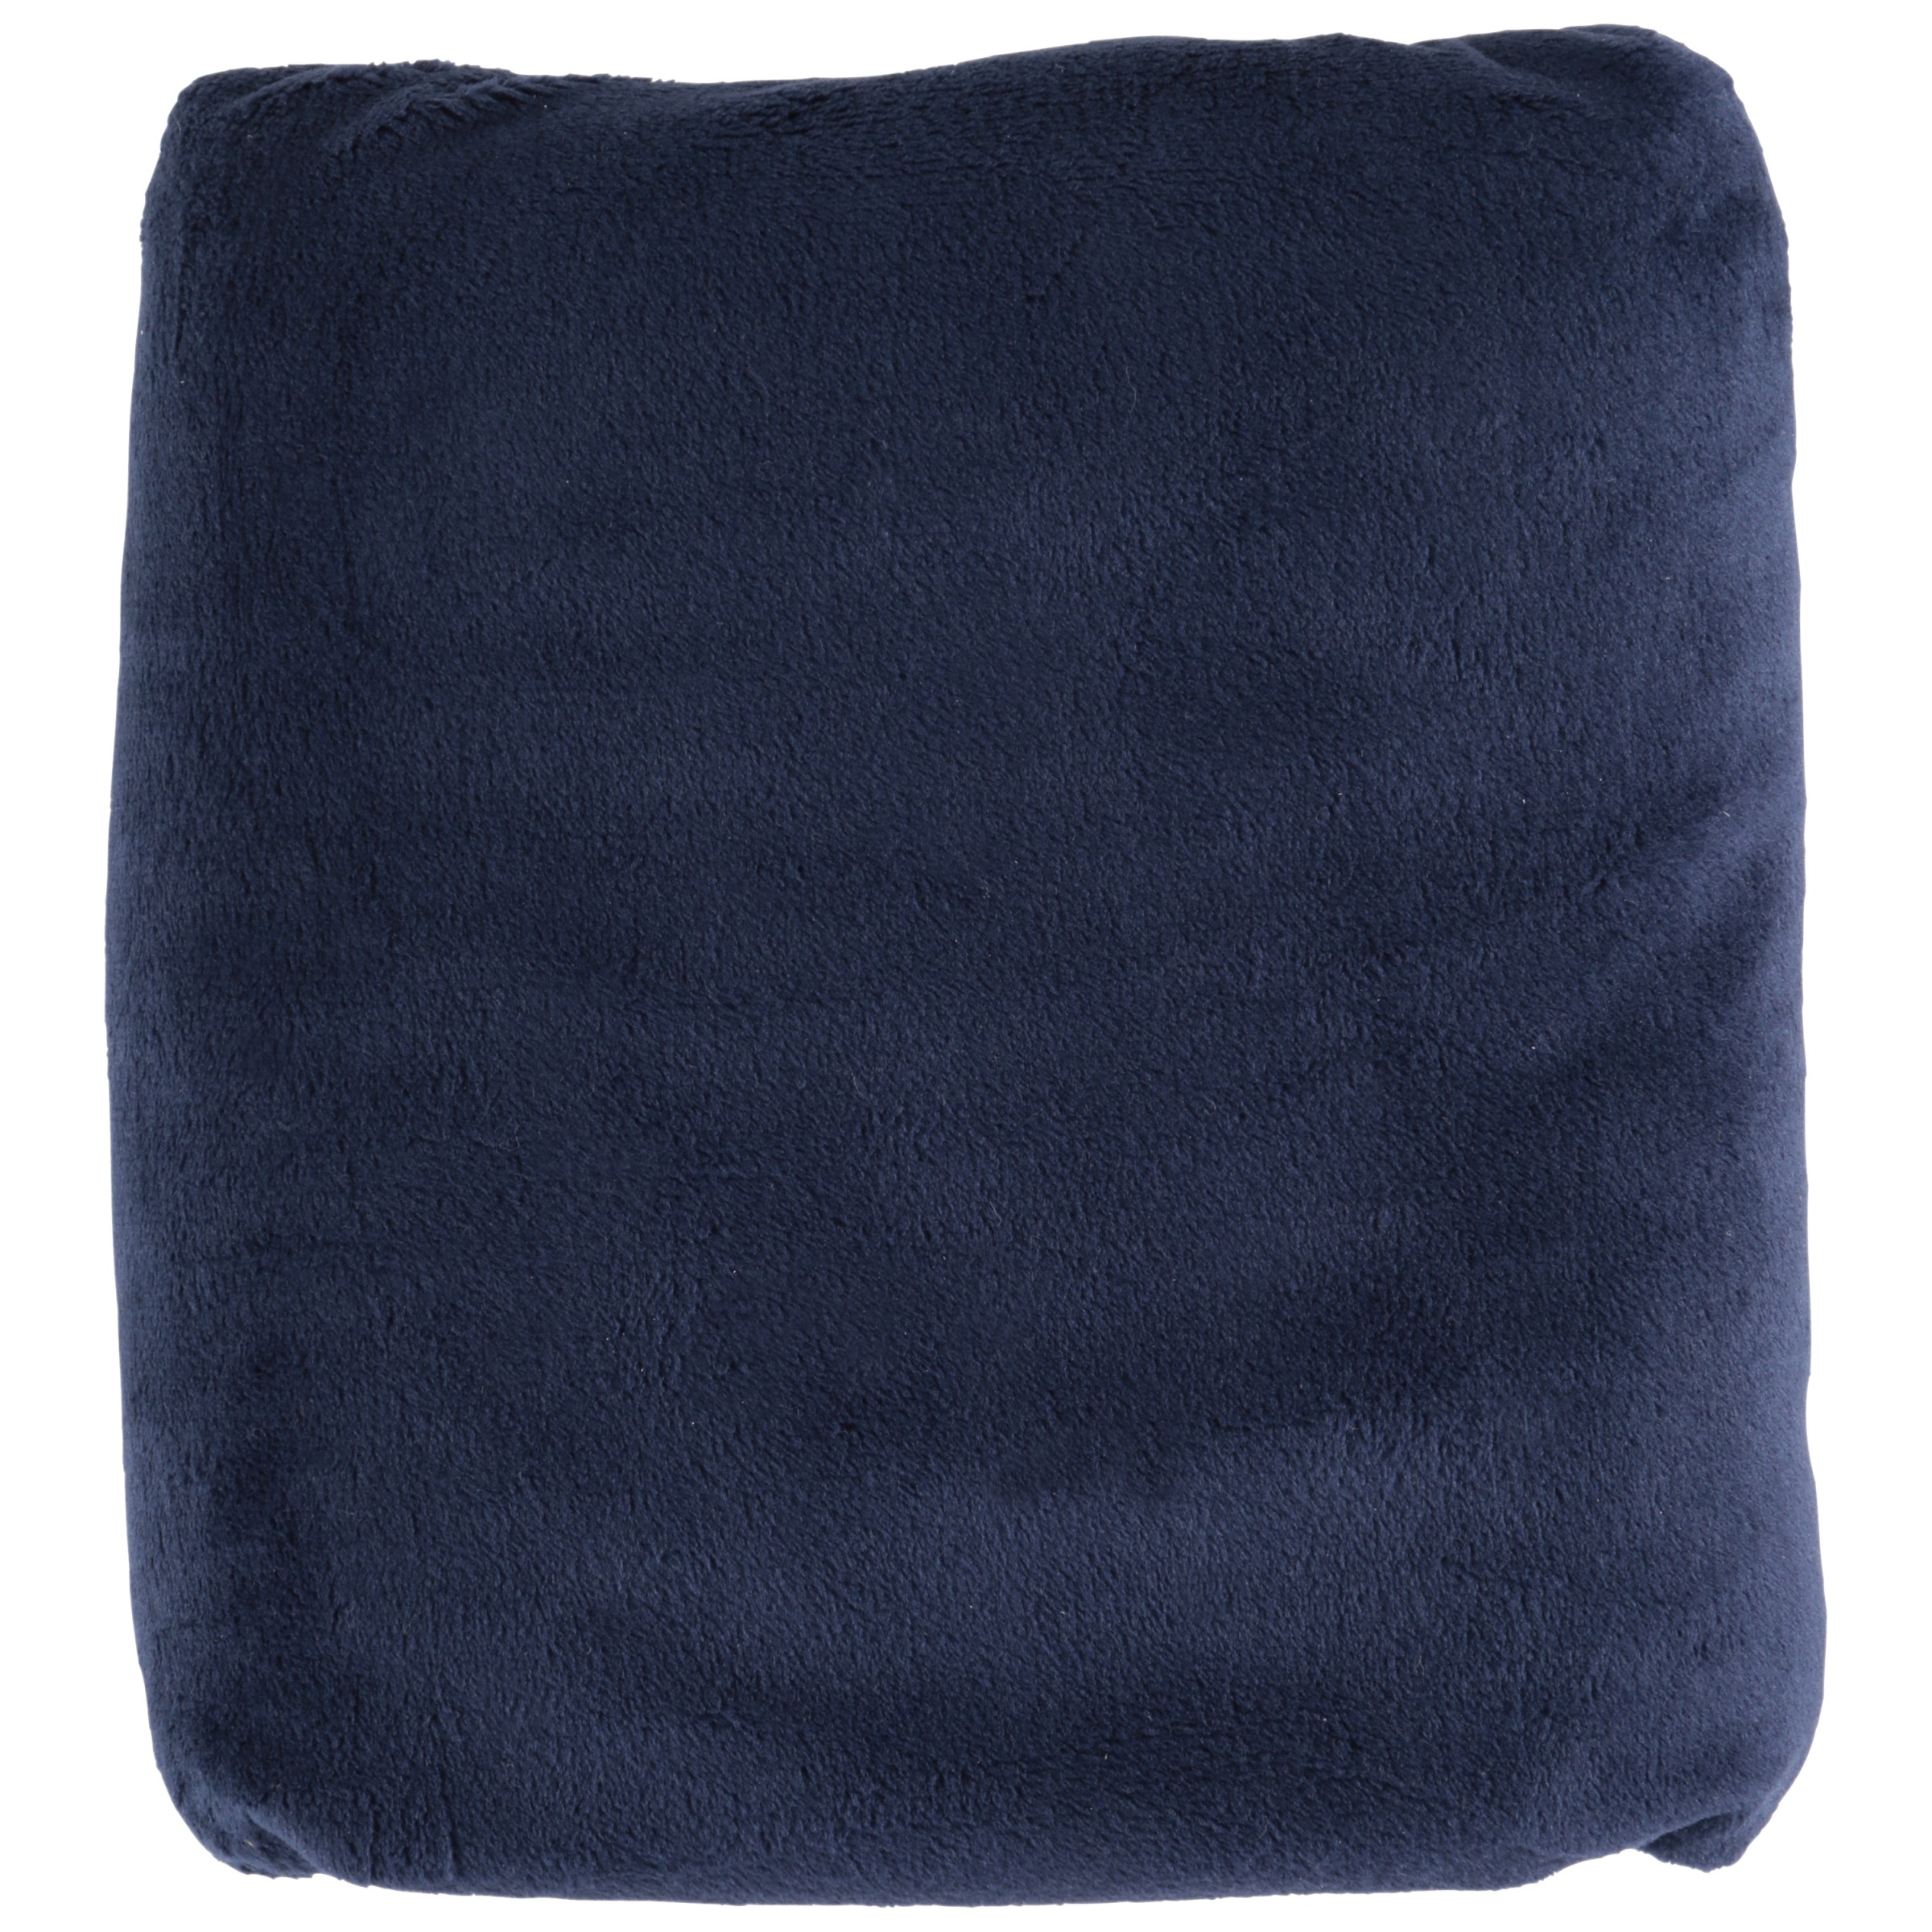 TL Care Heavenly Soft Chenille Fitted Crib Sheet for Standard Crib and Toddler Mattresses, Navy